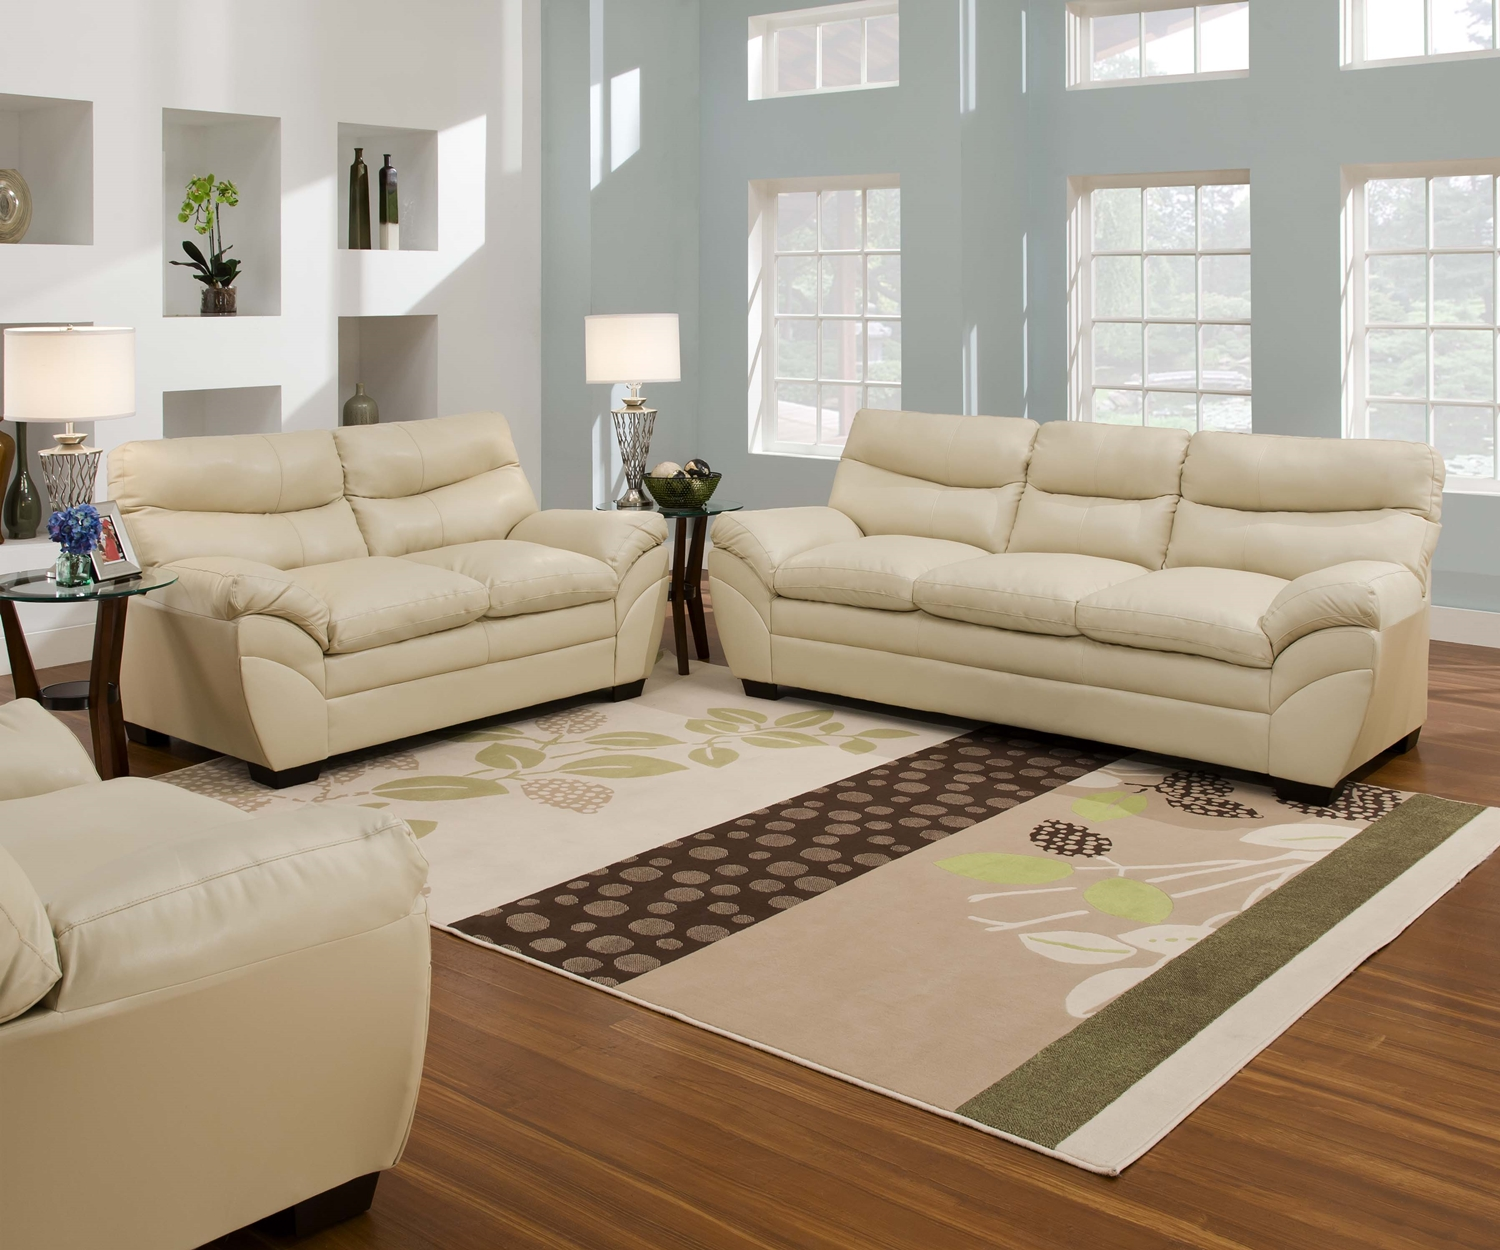 Cream living room furniture modern house - Modern living room chair ...